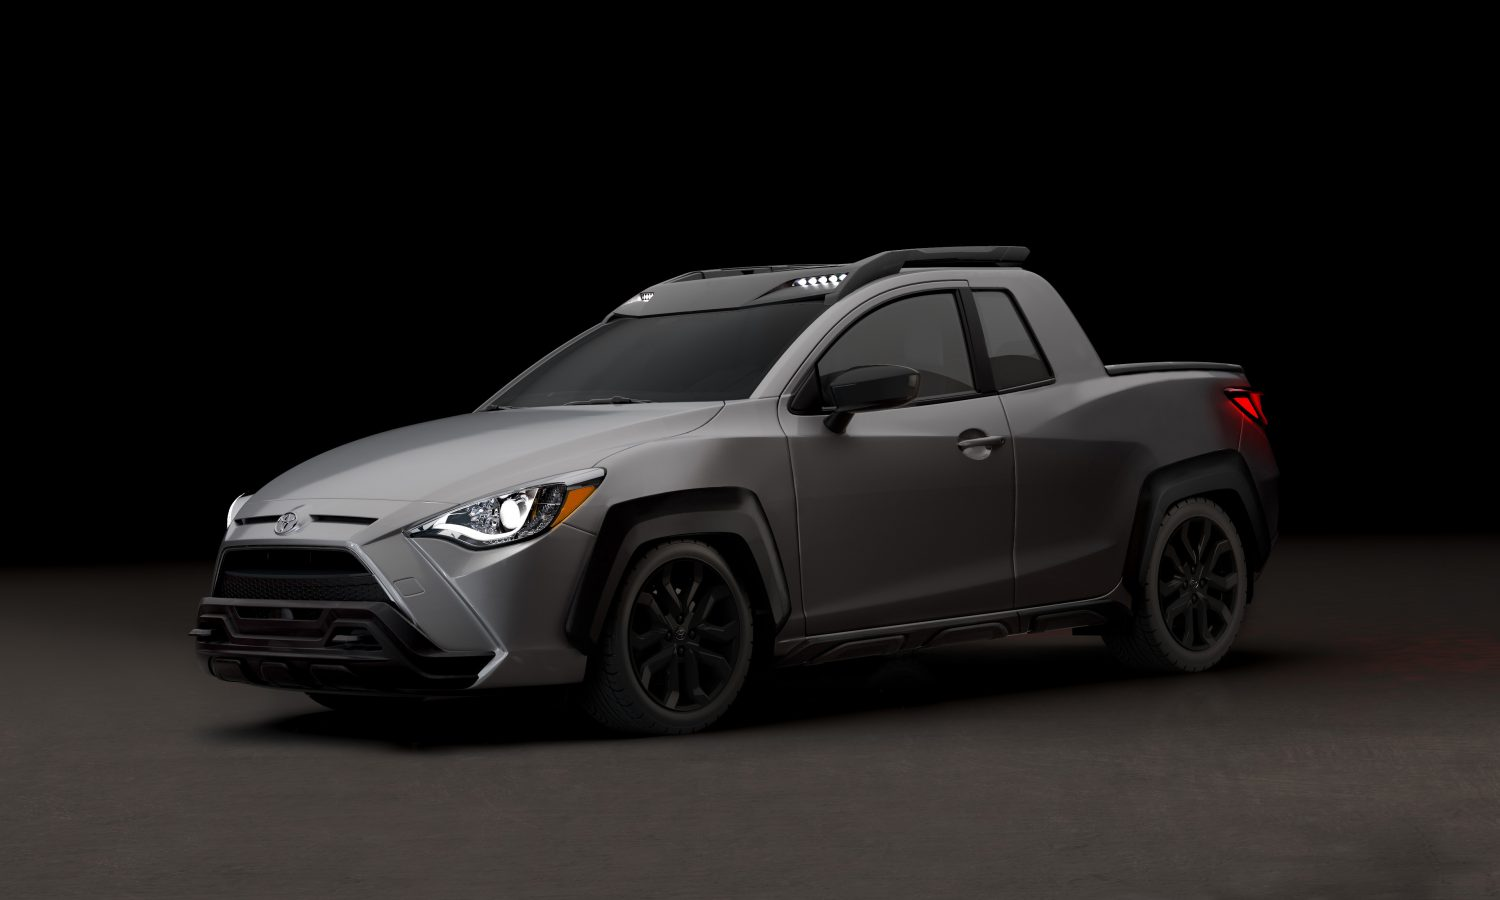 All-New 2020 Toyota Yaris Adventure: Answering the Question Nobody Asked